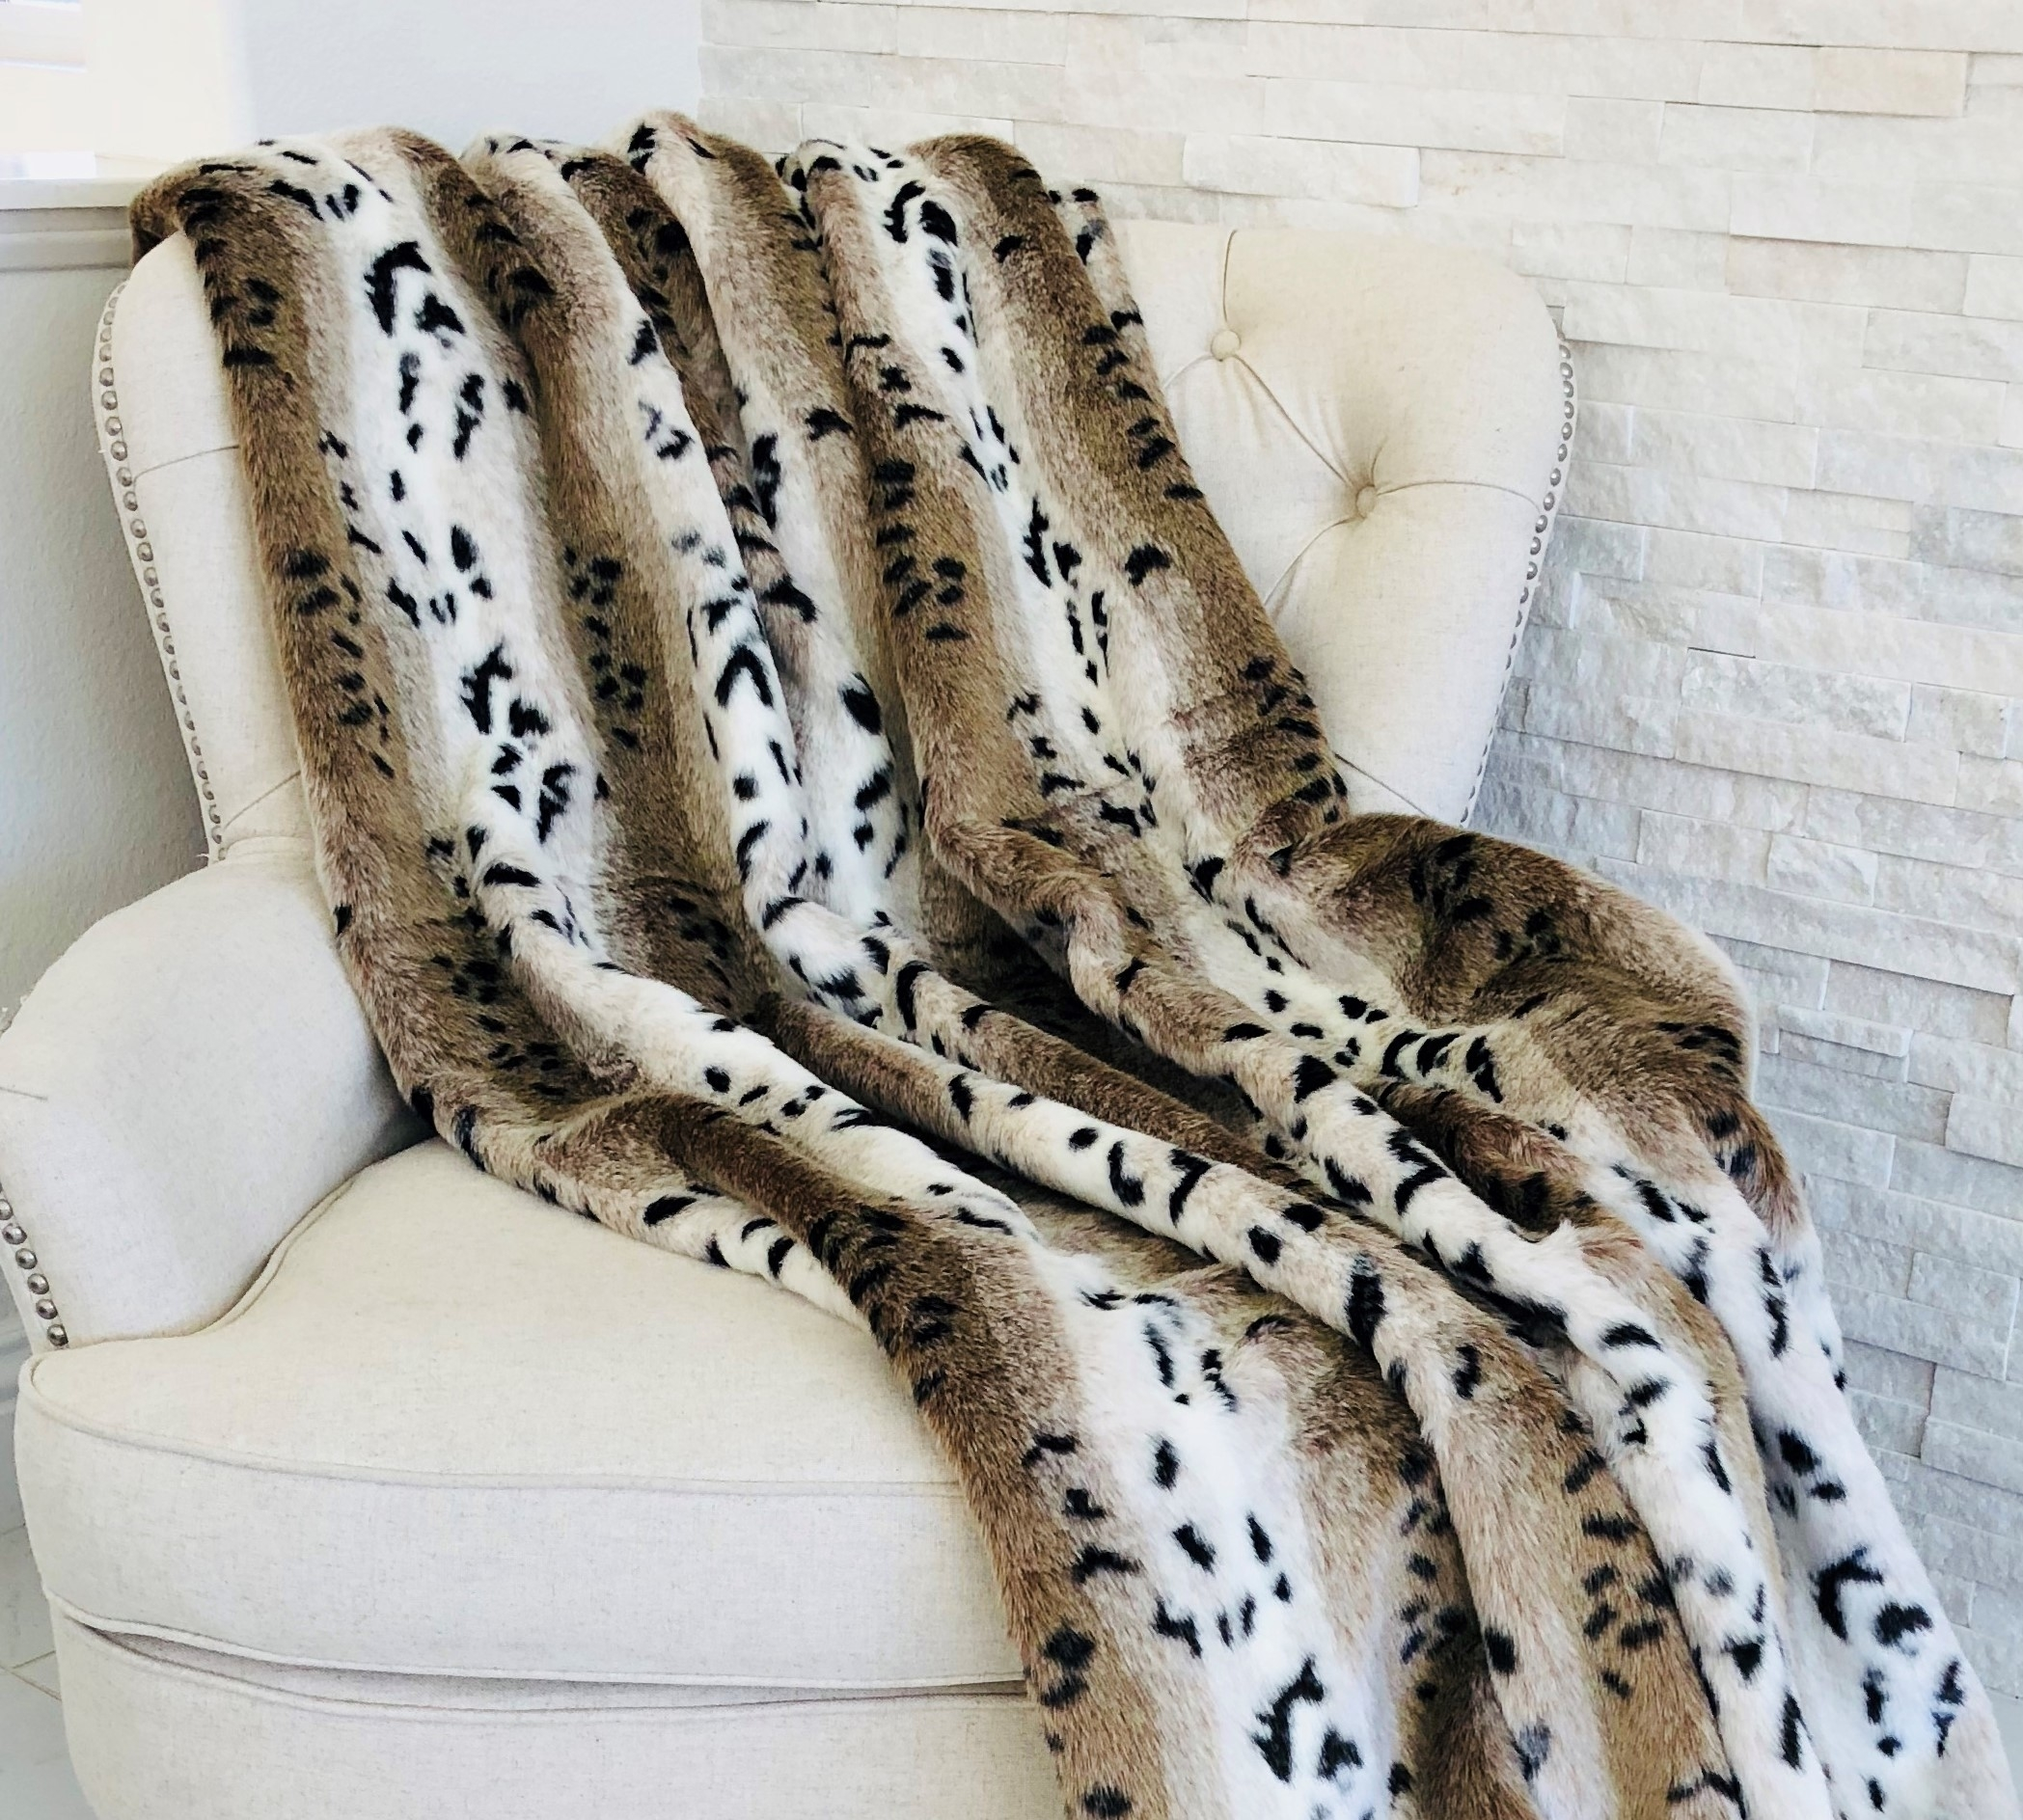 Plutus Snow Lynx Faux Fur Luxury Throw 5b1077851591026d37072bd3